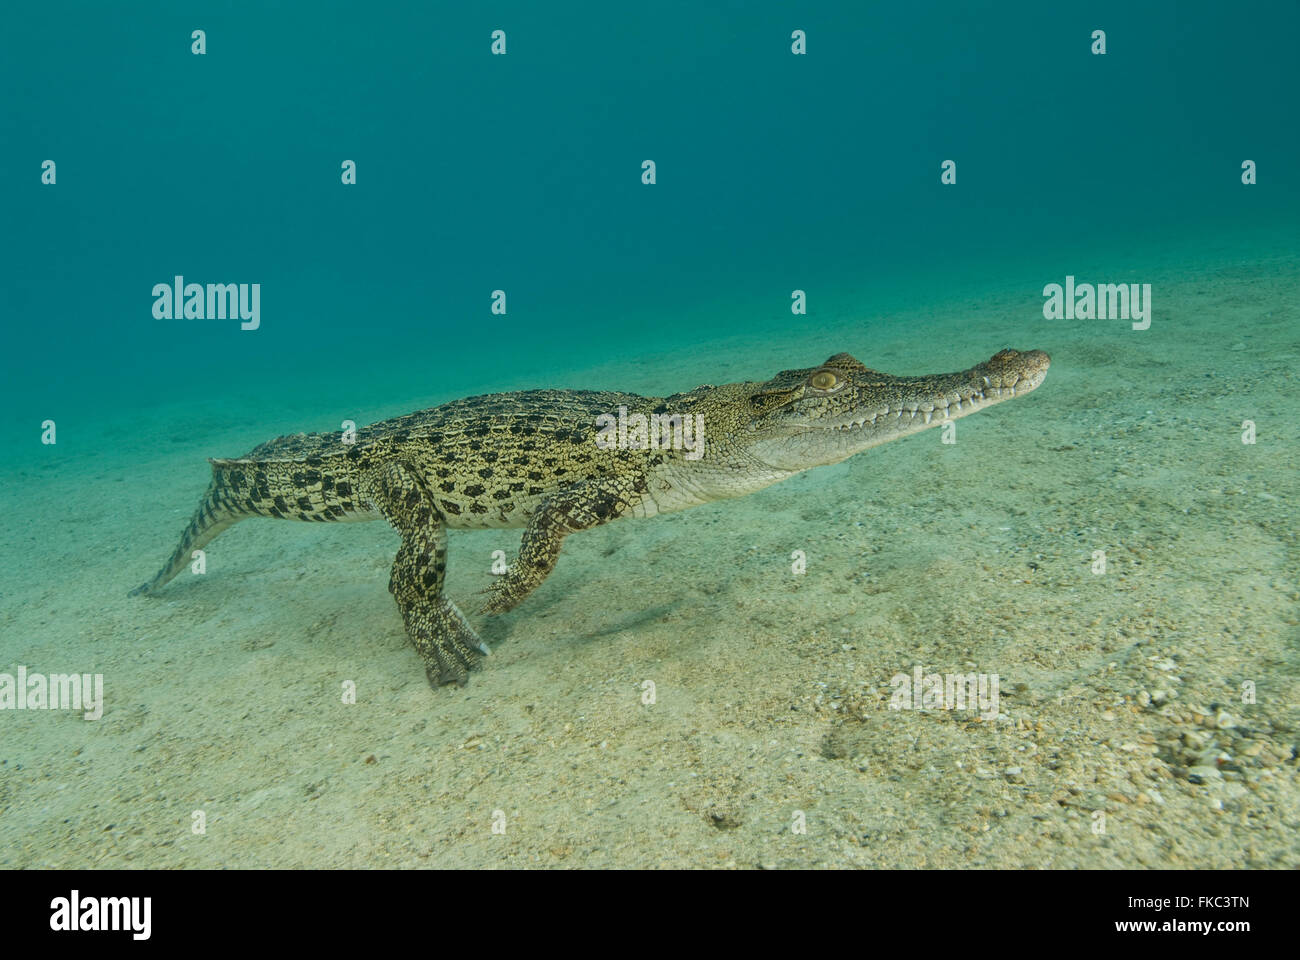 Saltwater crocodile, crocodylus porosus is the largest of all living crocodilians and reptiles. It is found in suitable - Stock Image